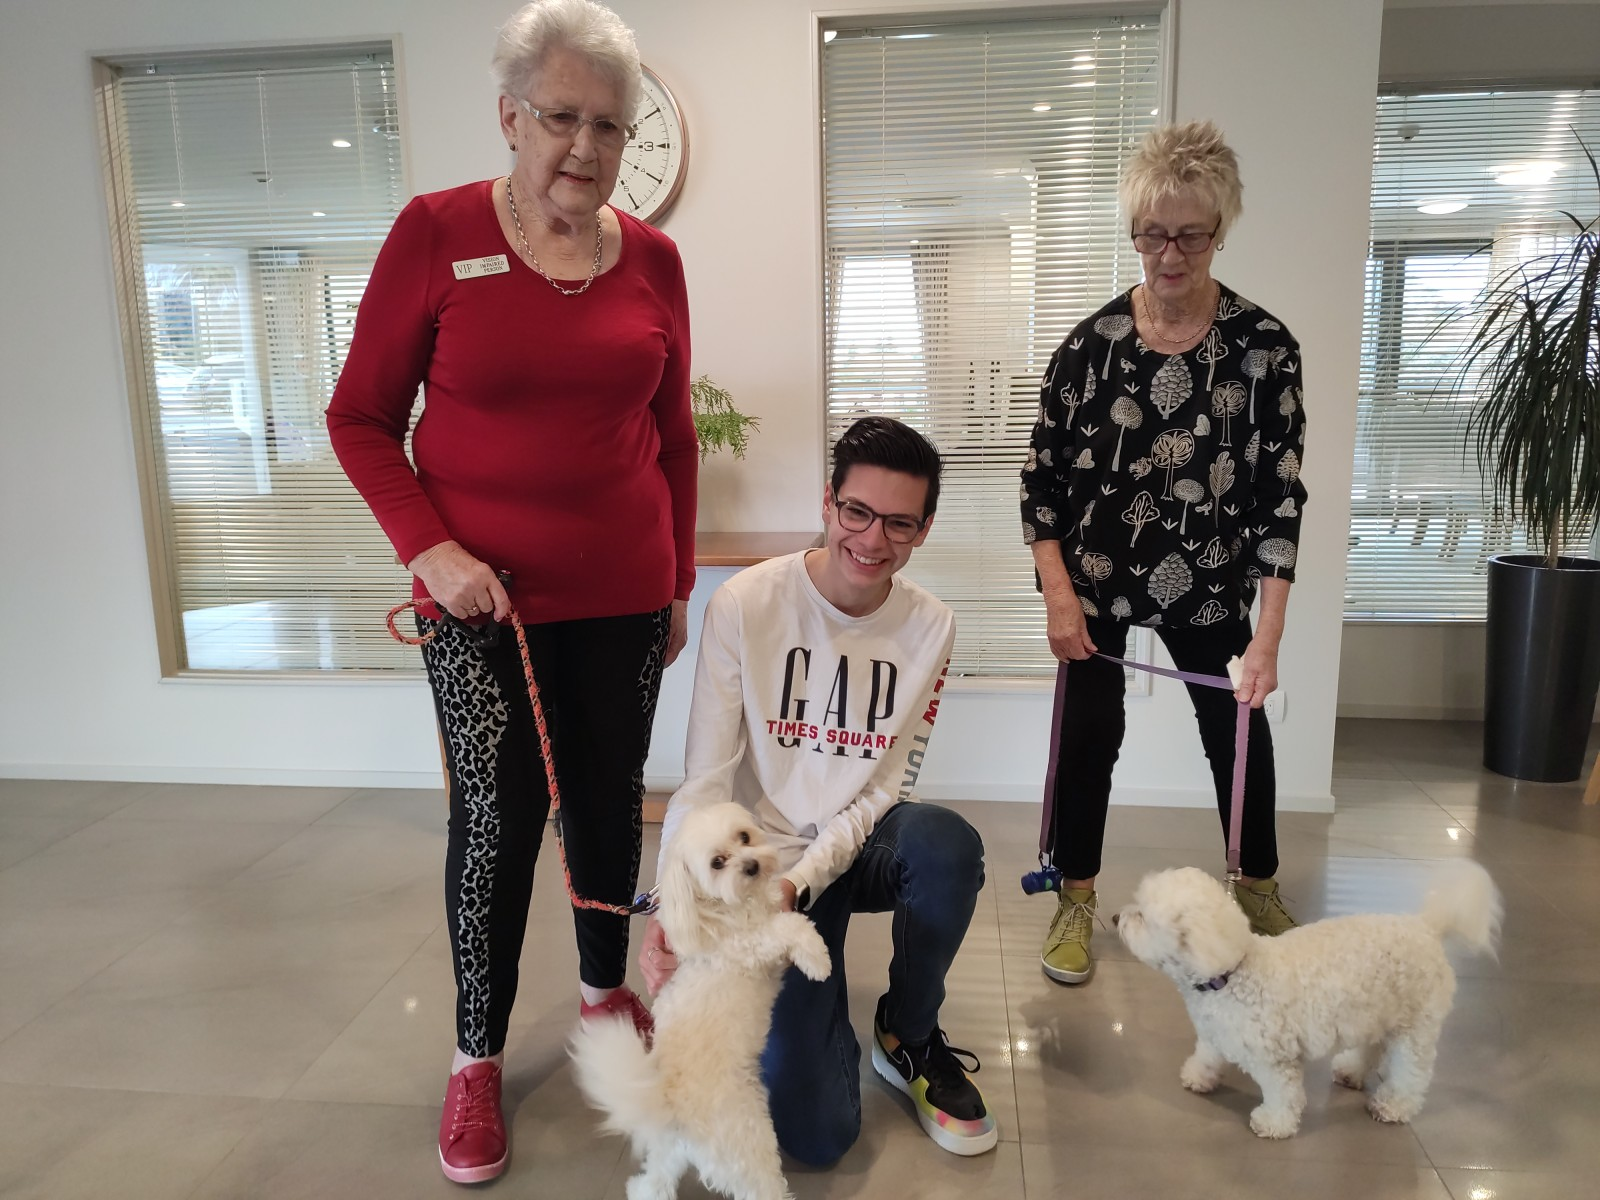 (Left to right) resident Marj Collett with her dog Snow, Daniel Cruickshank, resident Pat Horsley with her dog Timmy.